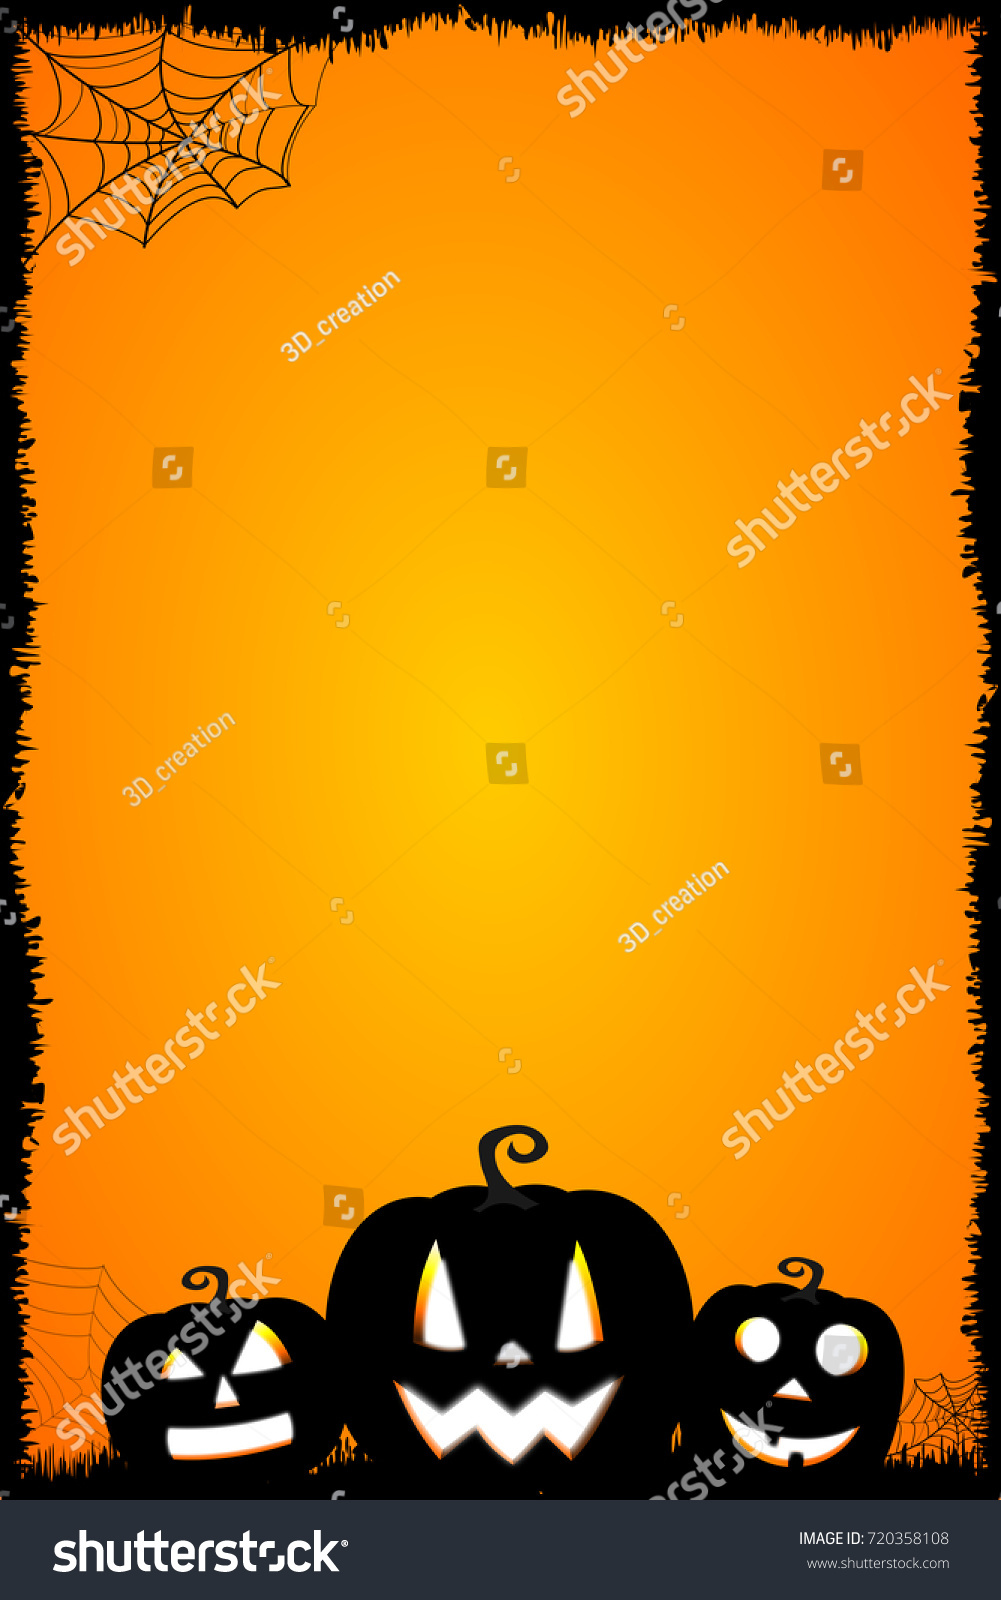 halloween card templateのイラスト素材 720358108 shutterstock